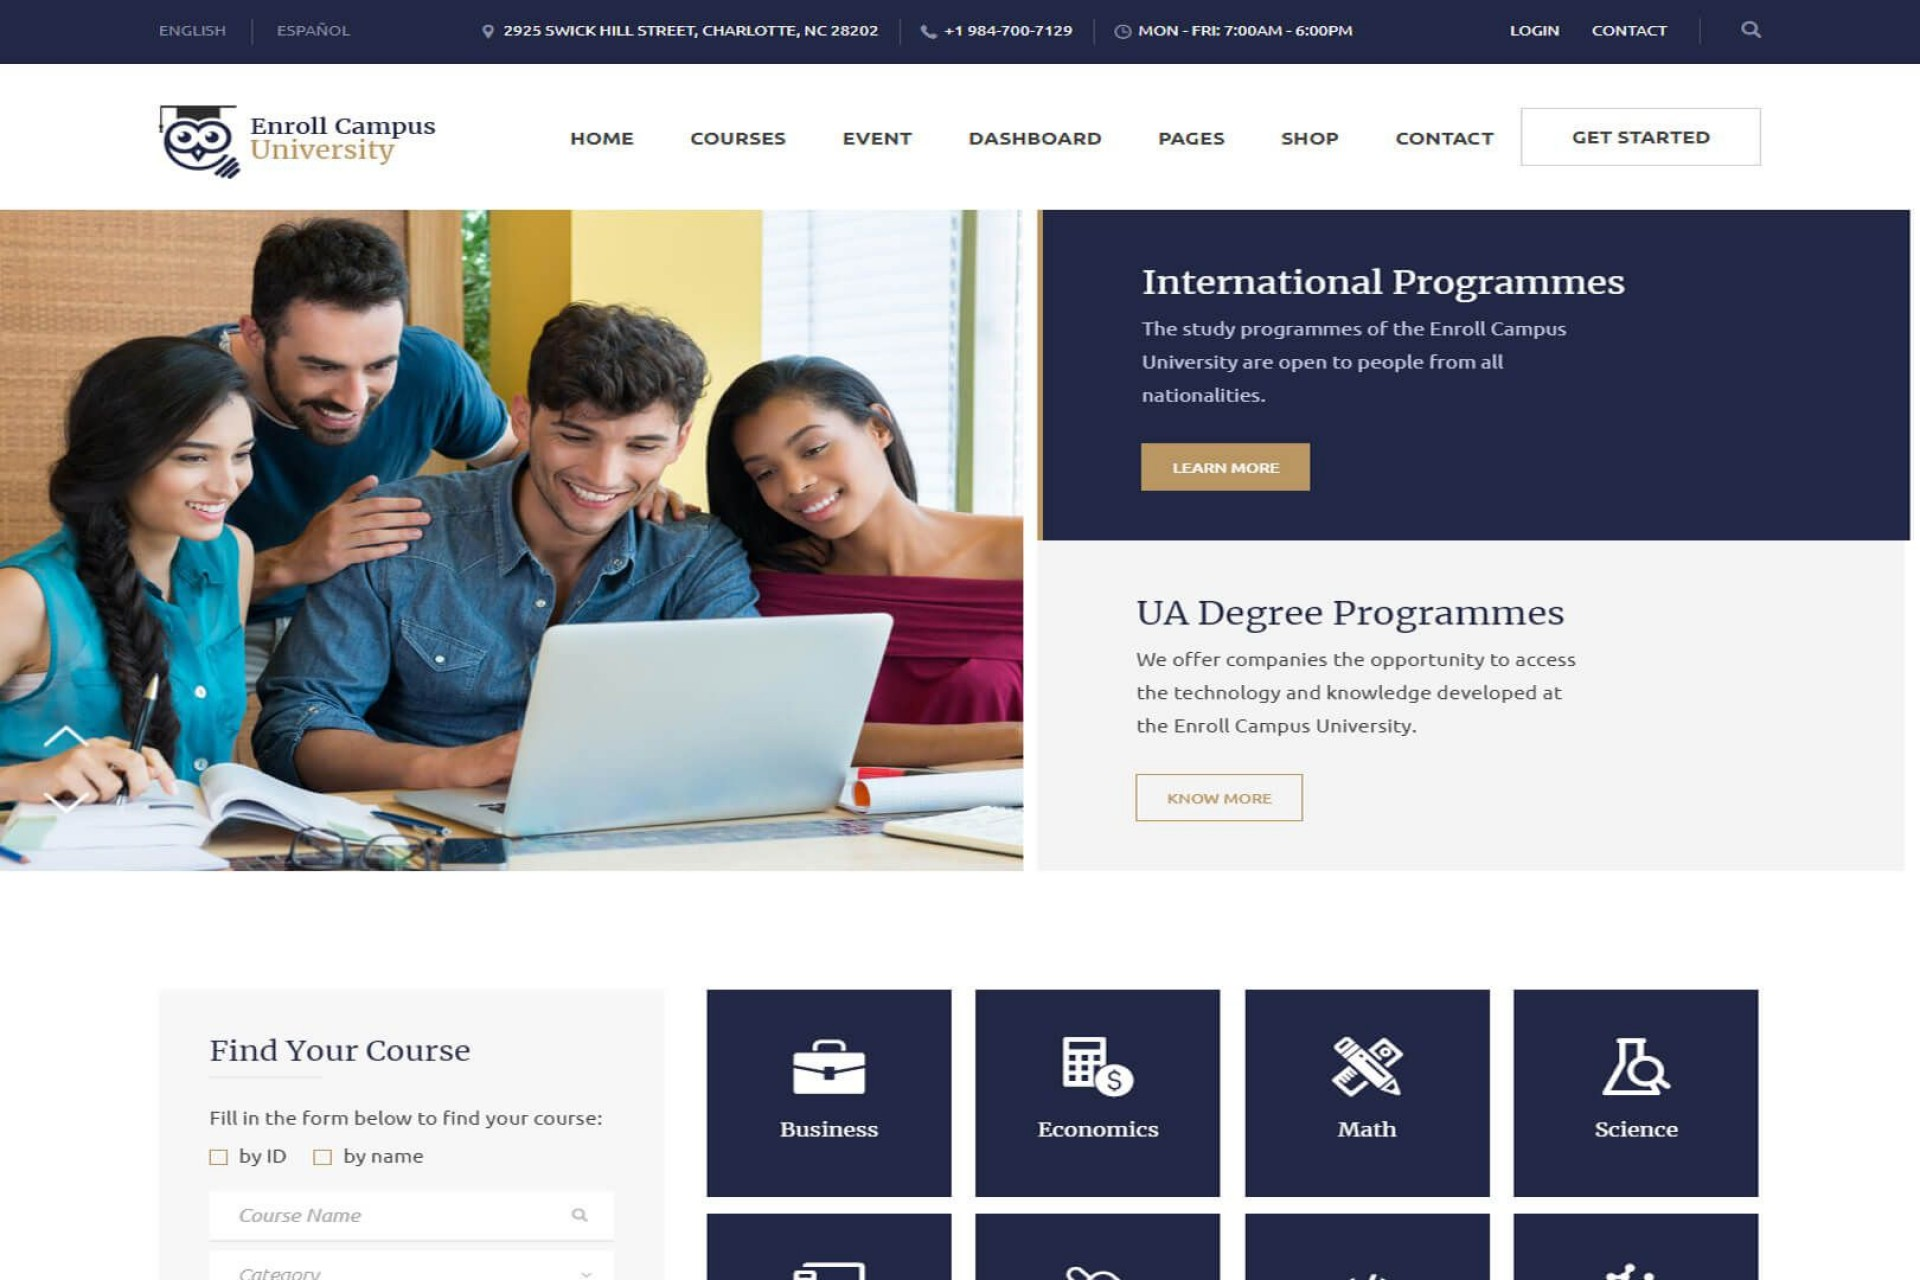 000 Impressive Free Website Template Download Html And Cs Jquery For Hospital Photo 1920